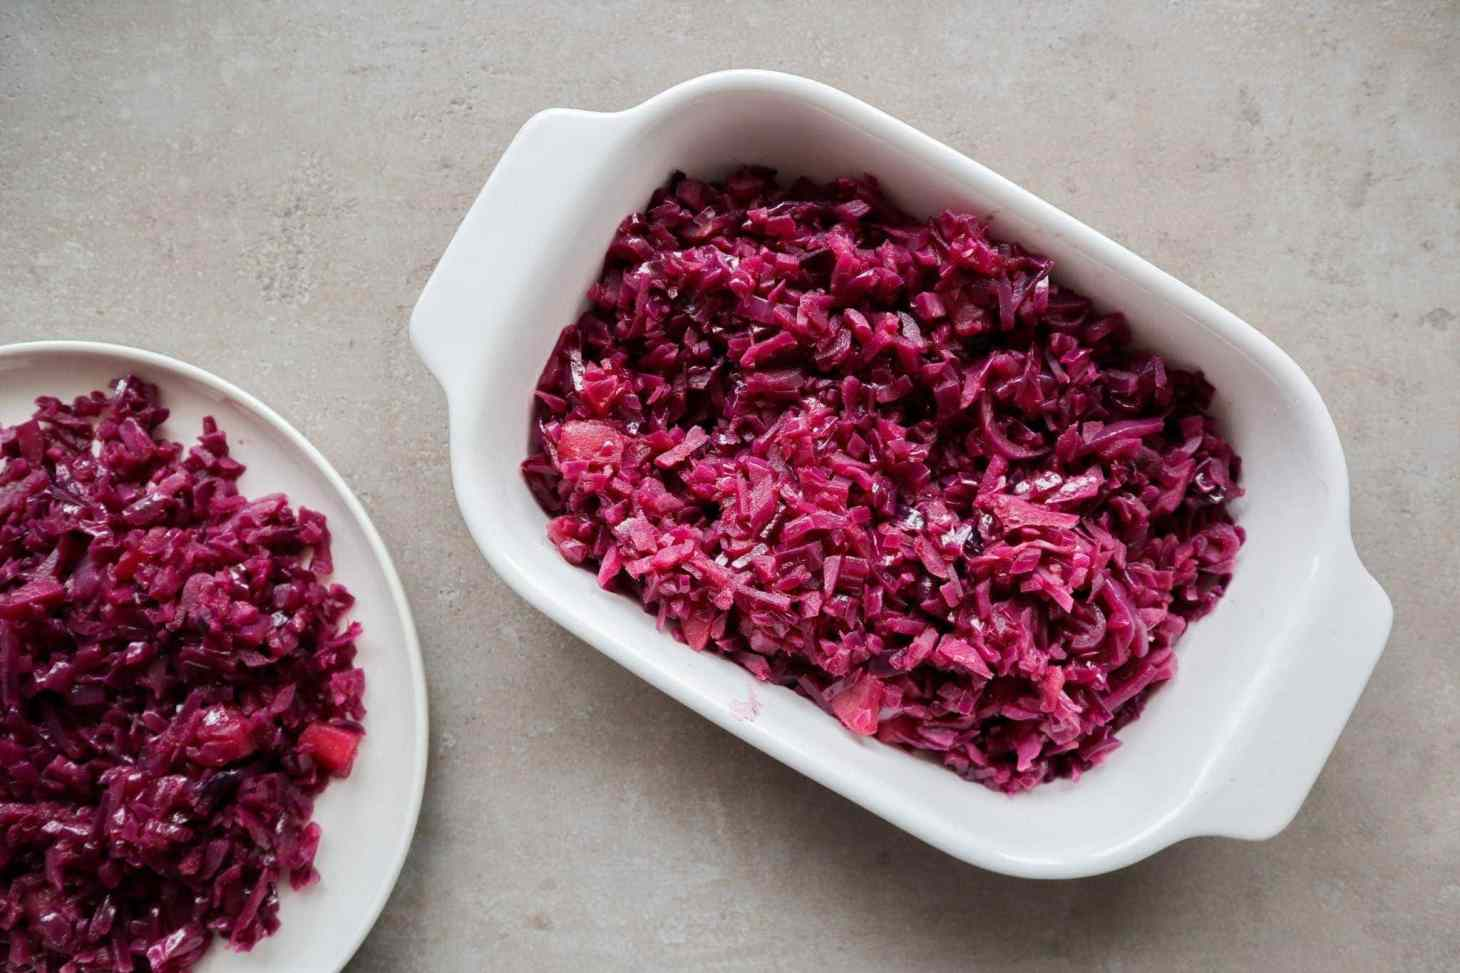 Breaised cabbage in a bowl with a plate ready to be served